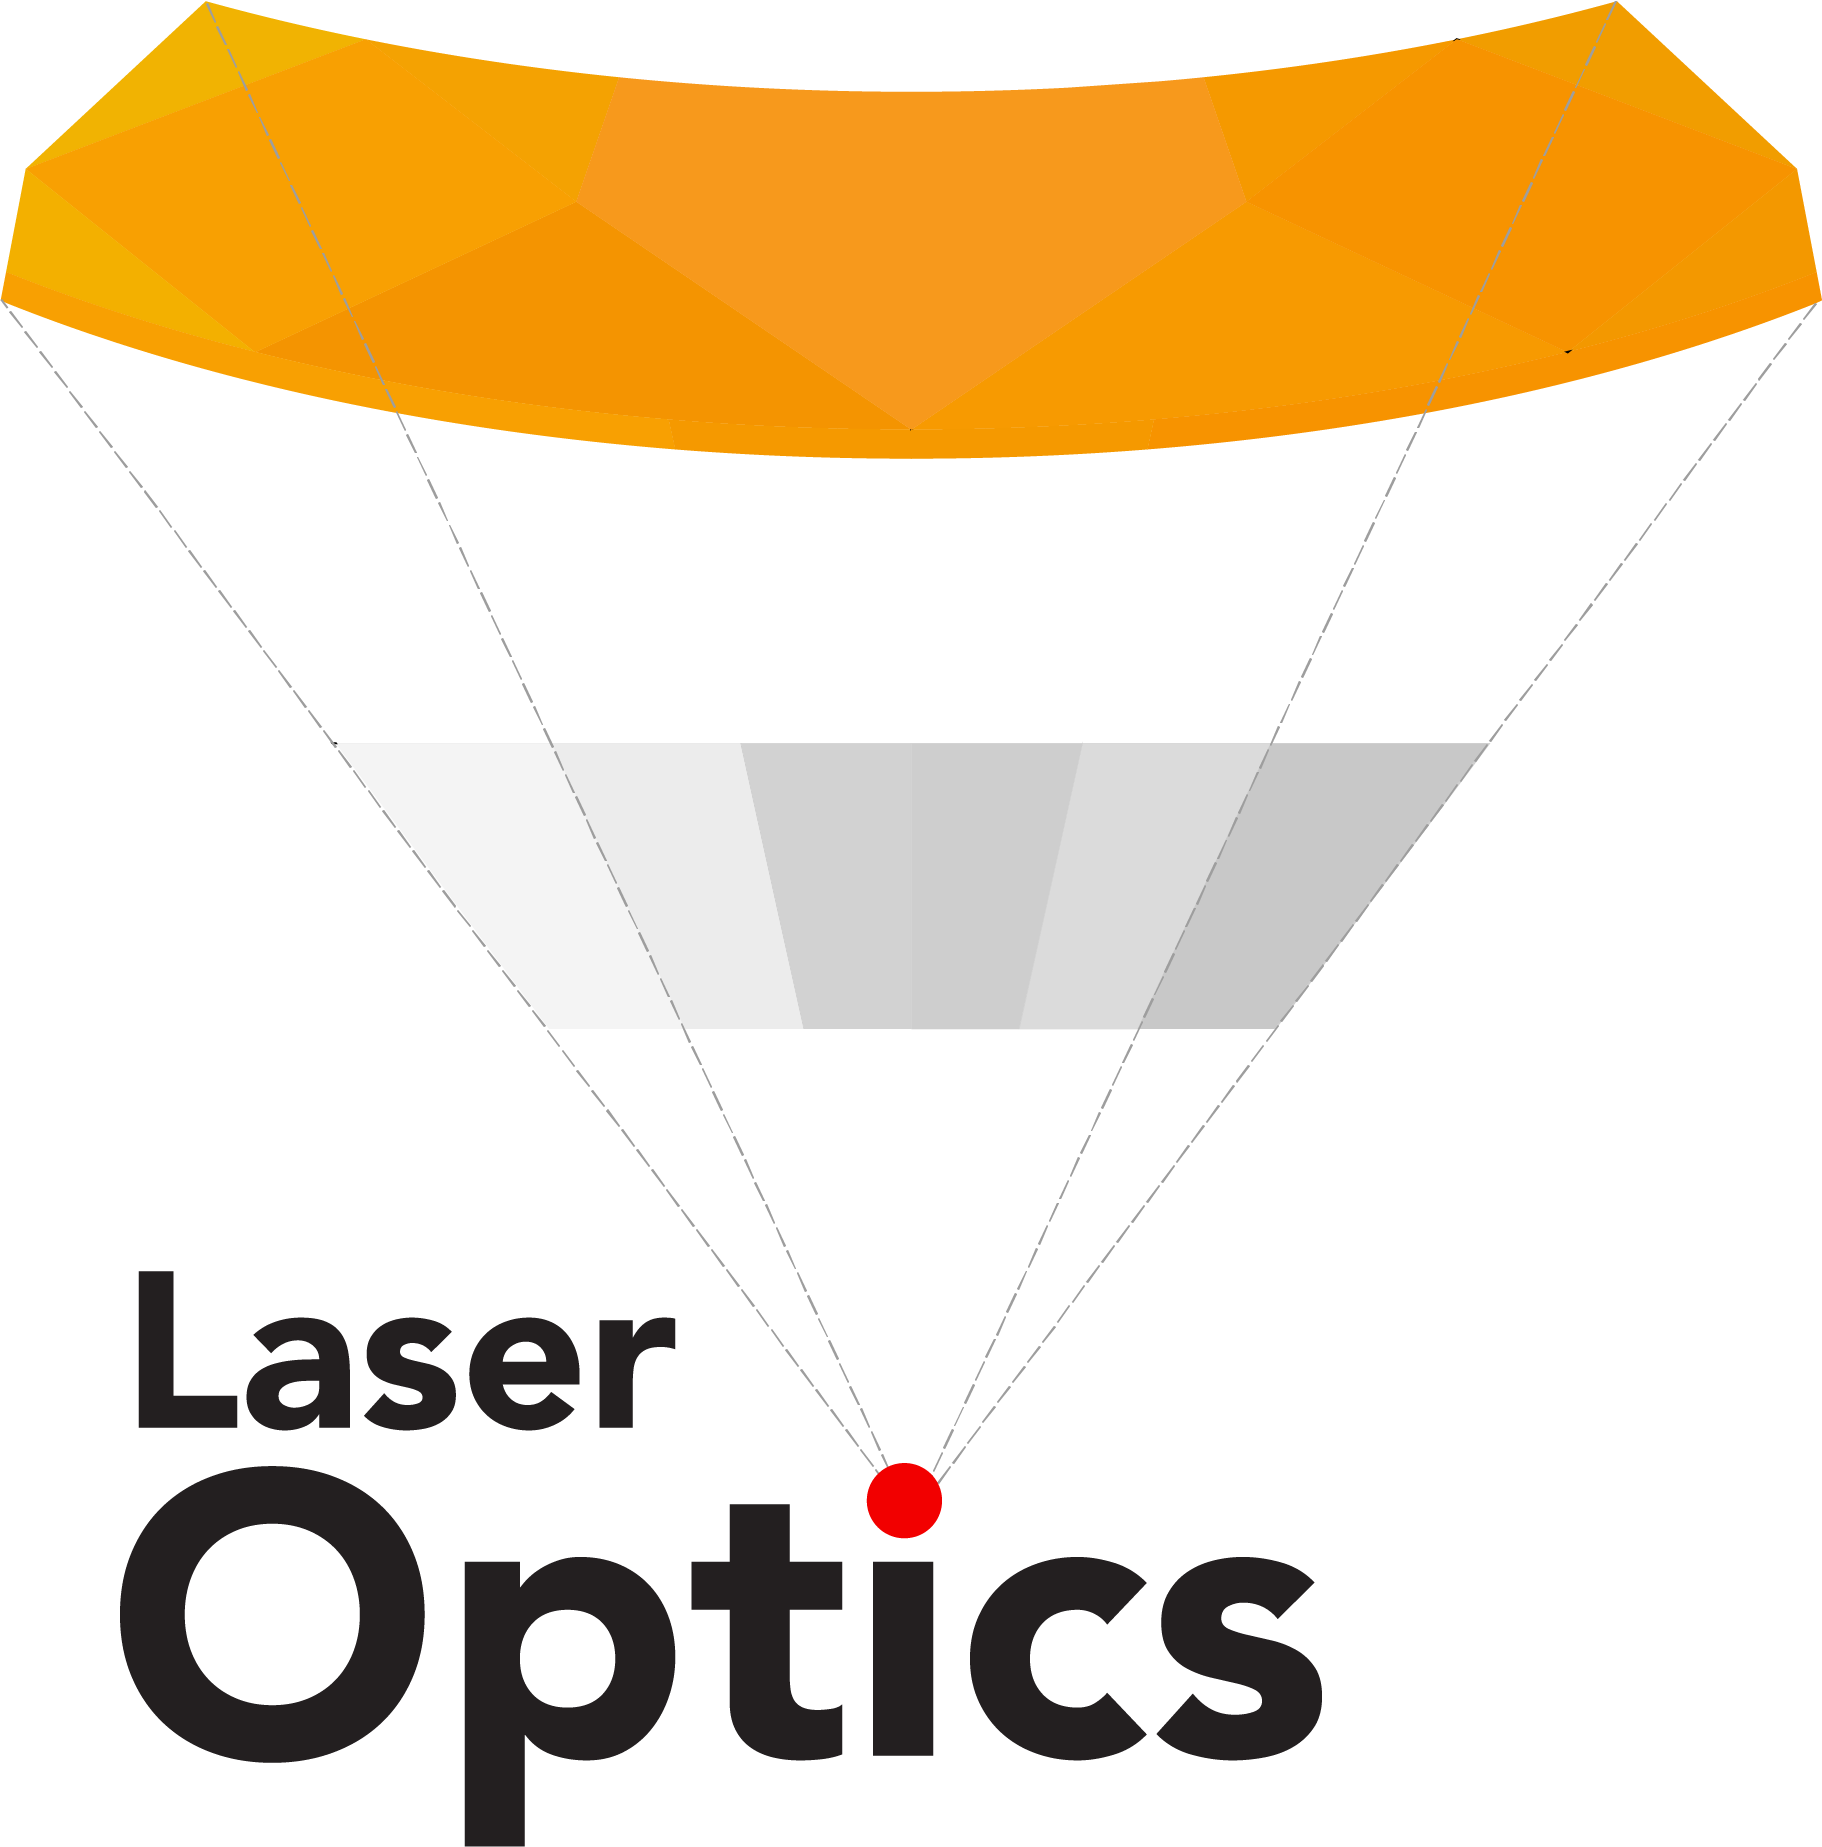 Laser Optics Logo